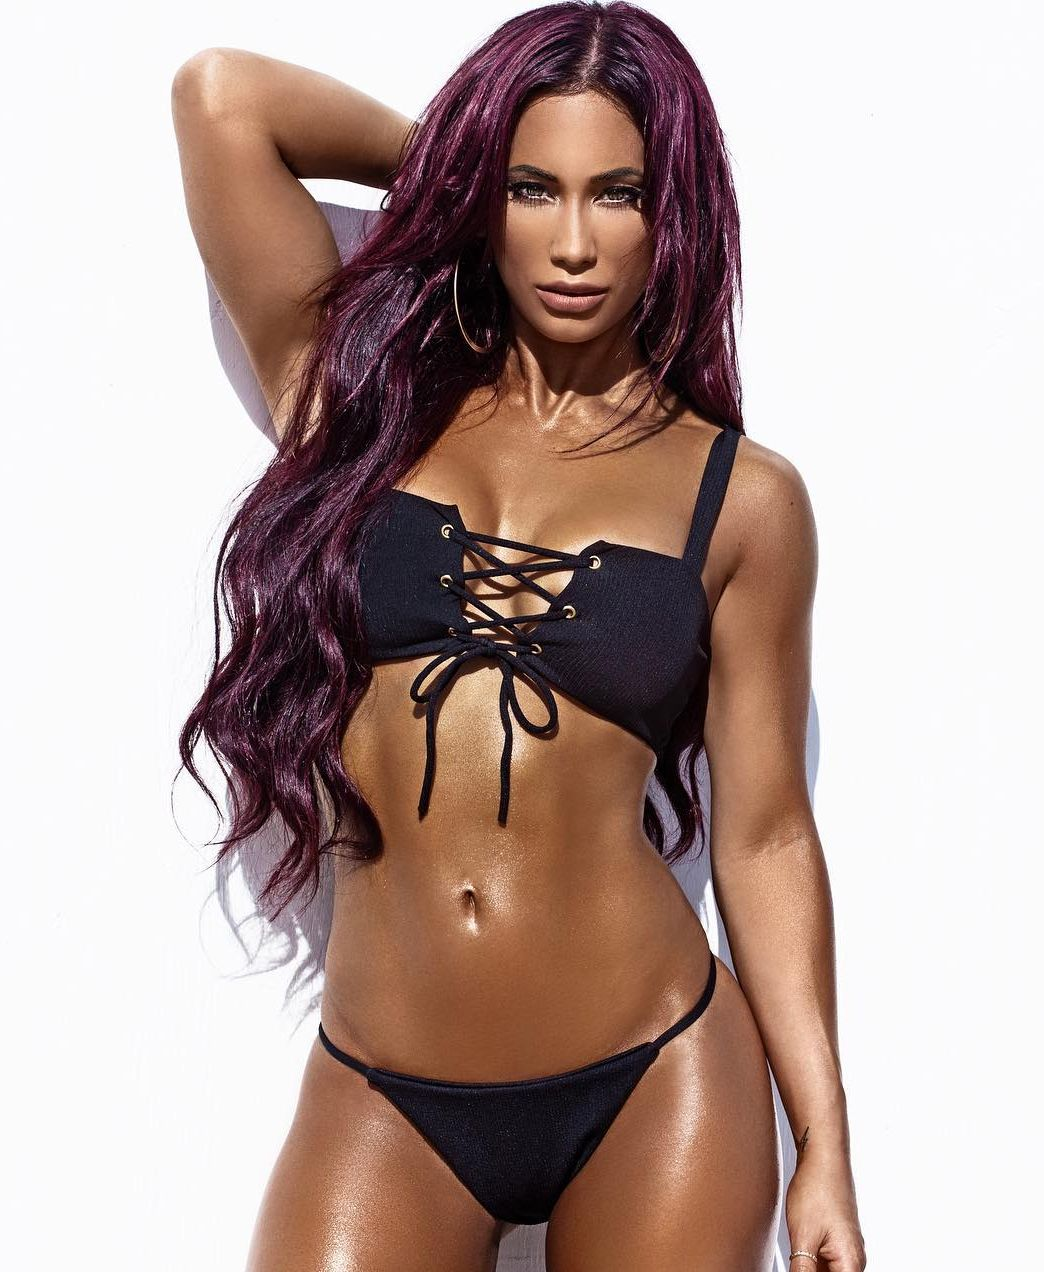 49 Hot Pictures Of Carmella Wwe Diva Will Make You Fall In Love With Her